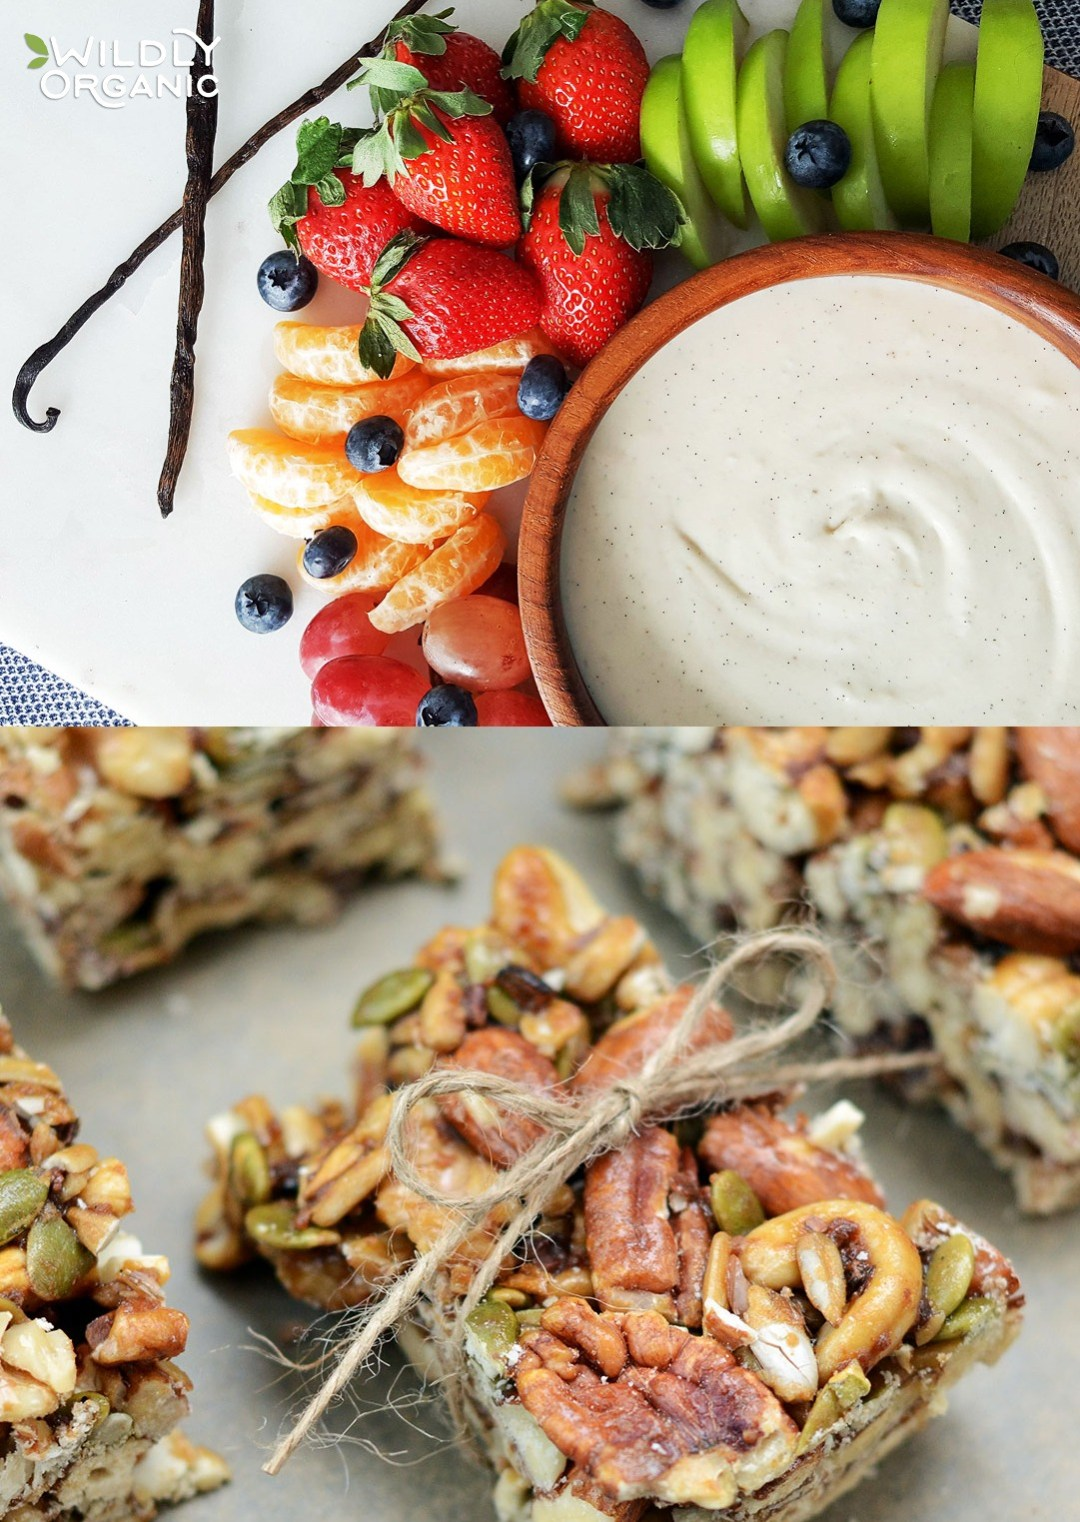 9 Tasty After School Snack Recipes   We're sharing 8 tasty after school snack recipes that your kids will absolutely love. In fact, we bet you'll love them, too!From easy loaded apple slices to superfood popcorn snack bars and even some grain-free cookies and milk cups, we have all of the delicious essentials for after school. You can even make ahead a bunch of these recipes to make snack time that much easier!#afterschool #healthy #snacks #schoolsnack #snacktime #glutenfree